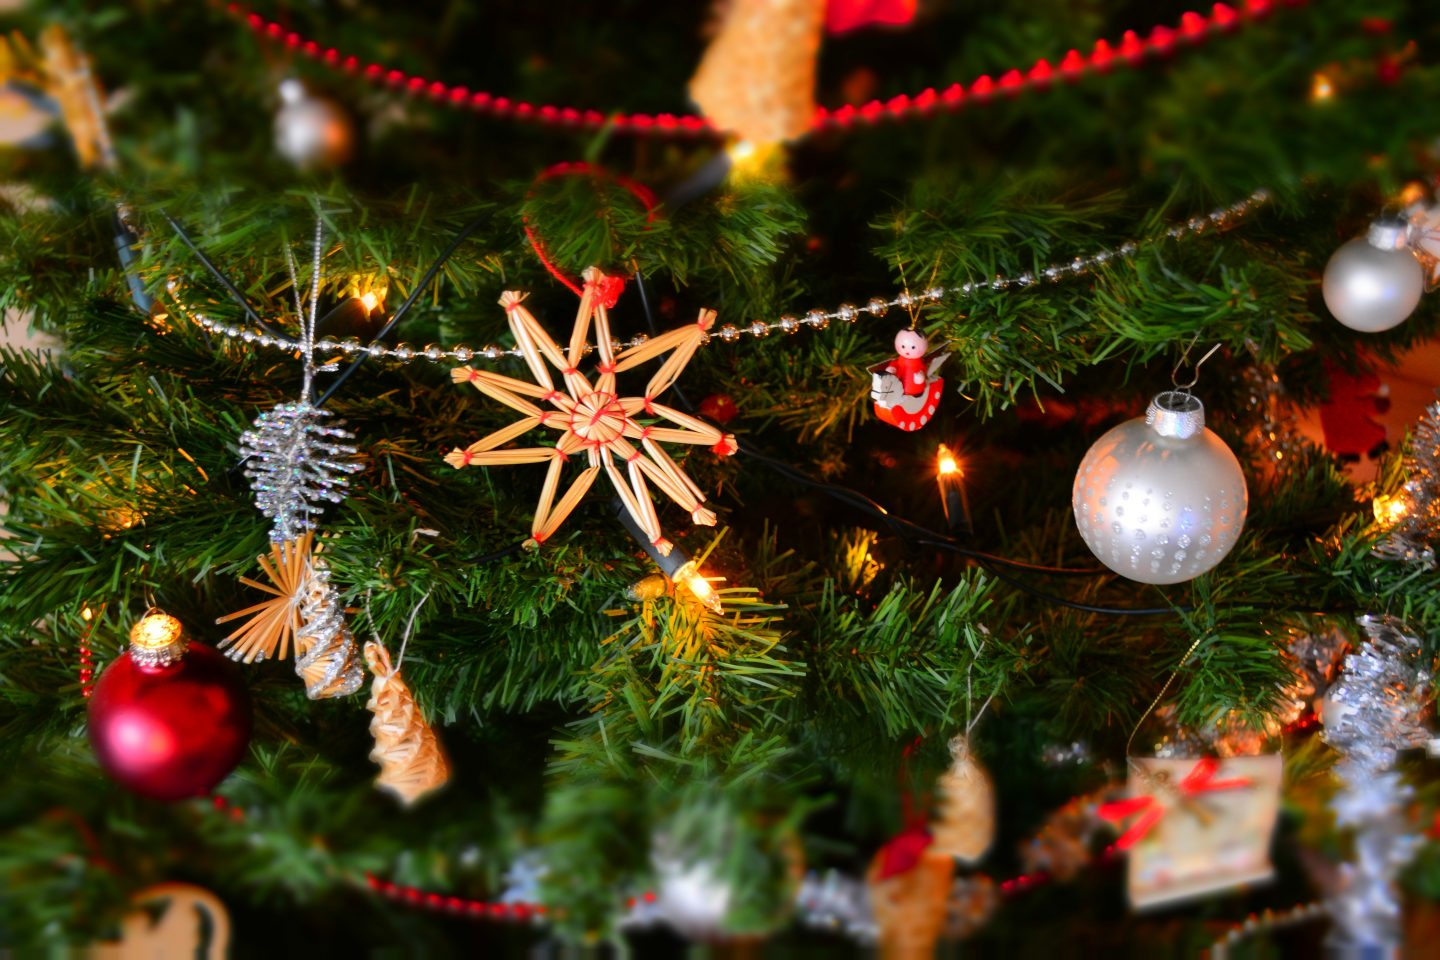 Stock image of a close up Christmas tree to promote our Christmas event for bloggers in South Gloucestershire.